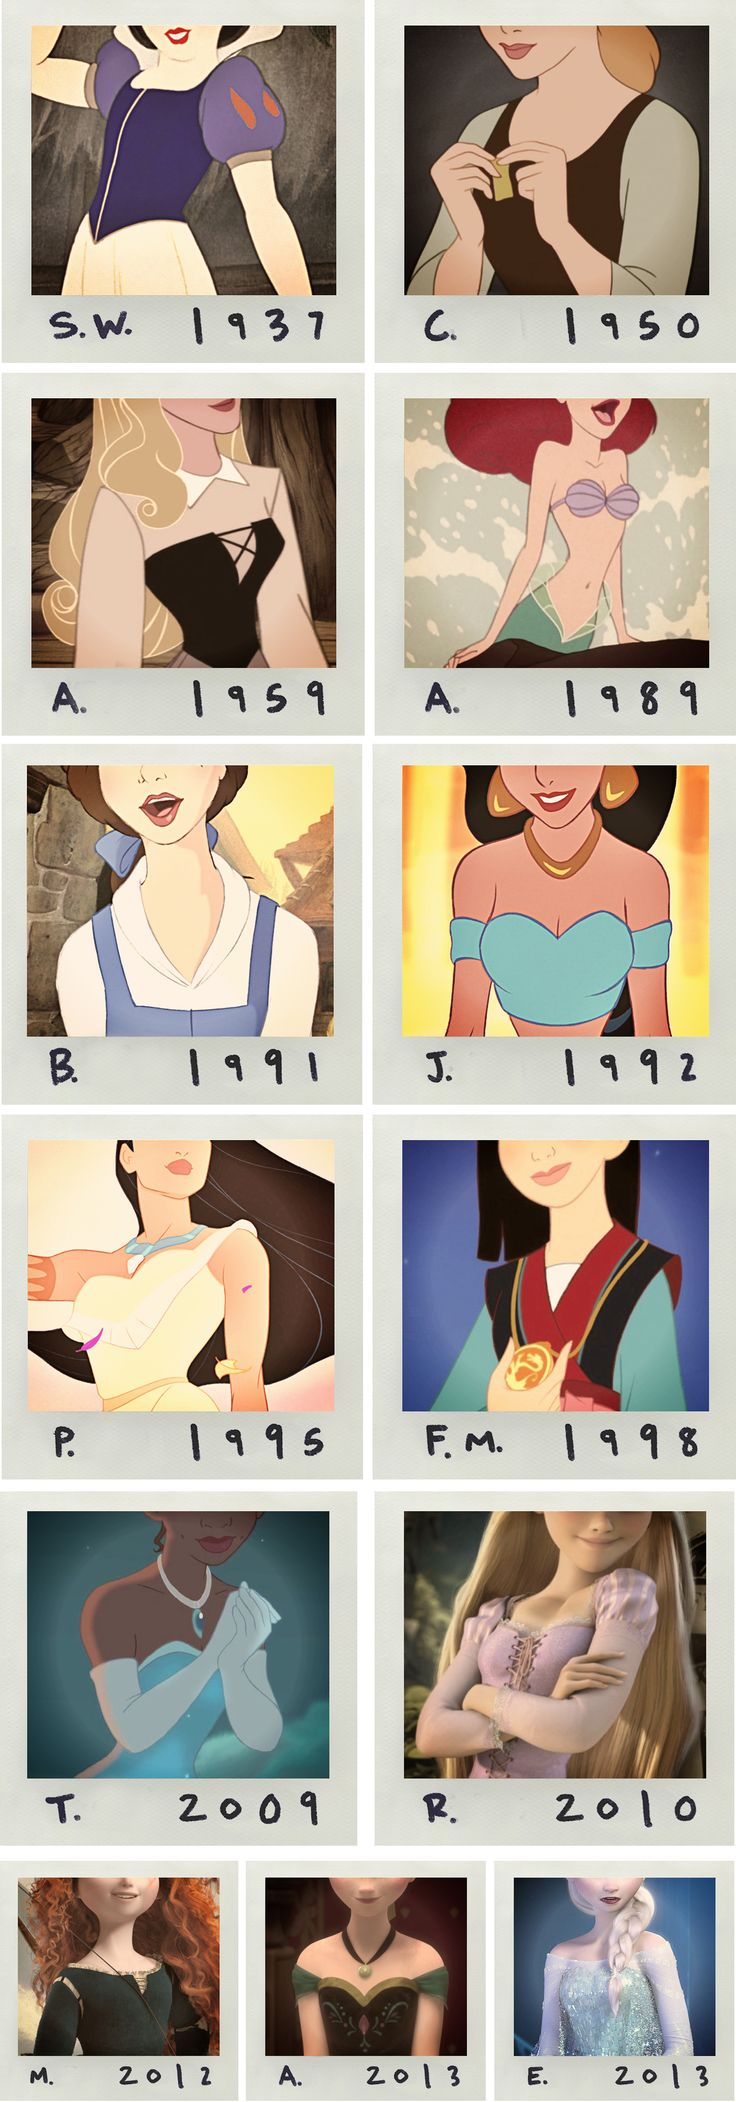 Pictures of Disney bosoms?  Seriously? Gauche.